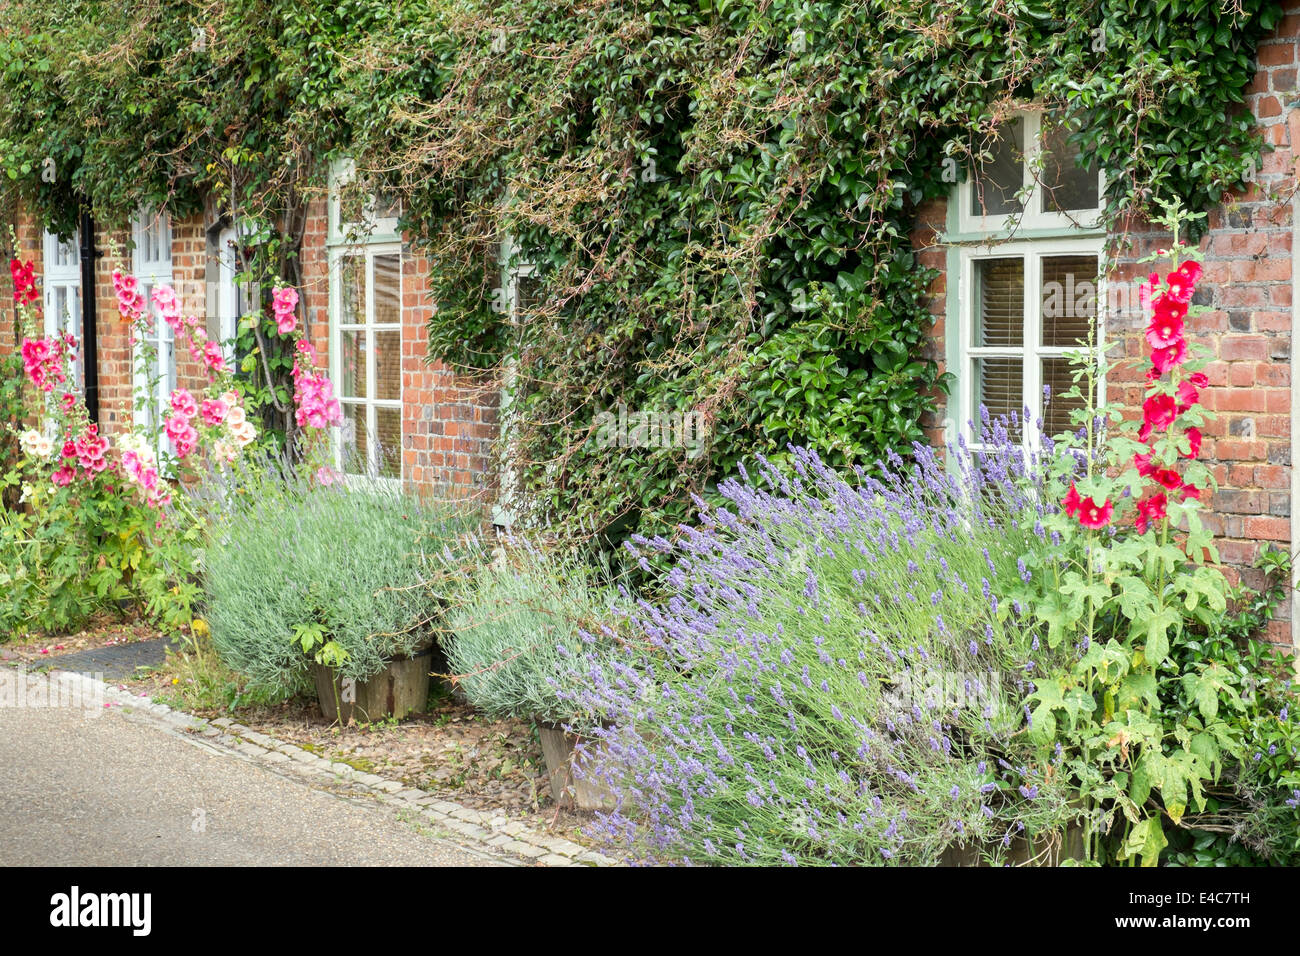 Lavender & Hollyhocks growth in cottage front gardens Hambleden village Buckinghamshire UK - Stock Image